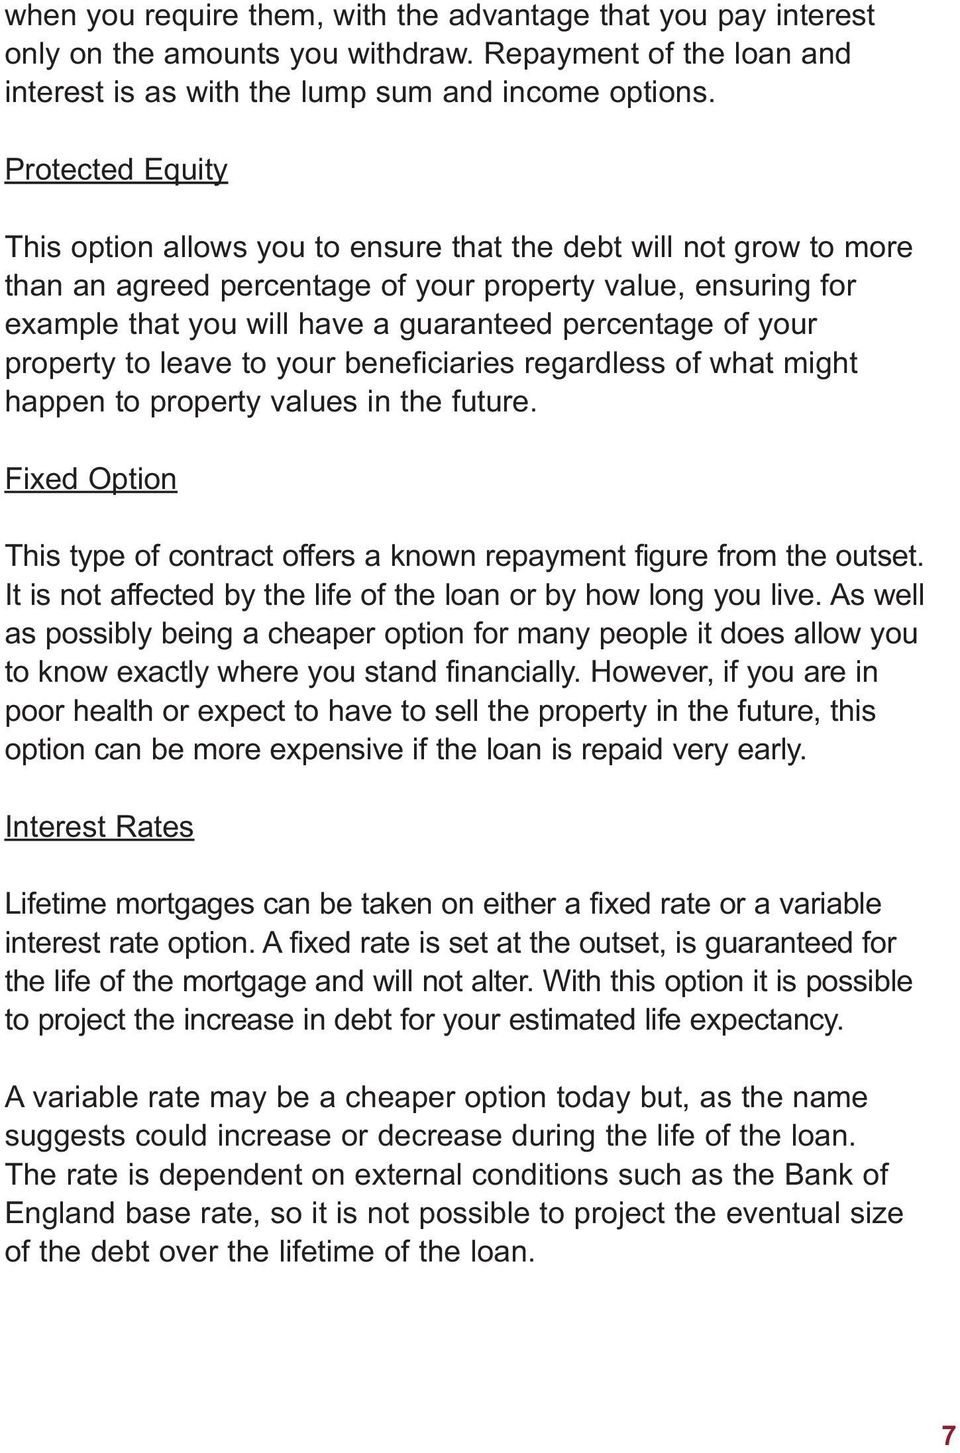 of your property to leave to your beneficiaries regardless of what might happen to property values in the future. Fixed Option This type of contract offers a known repayment figure from the outset.